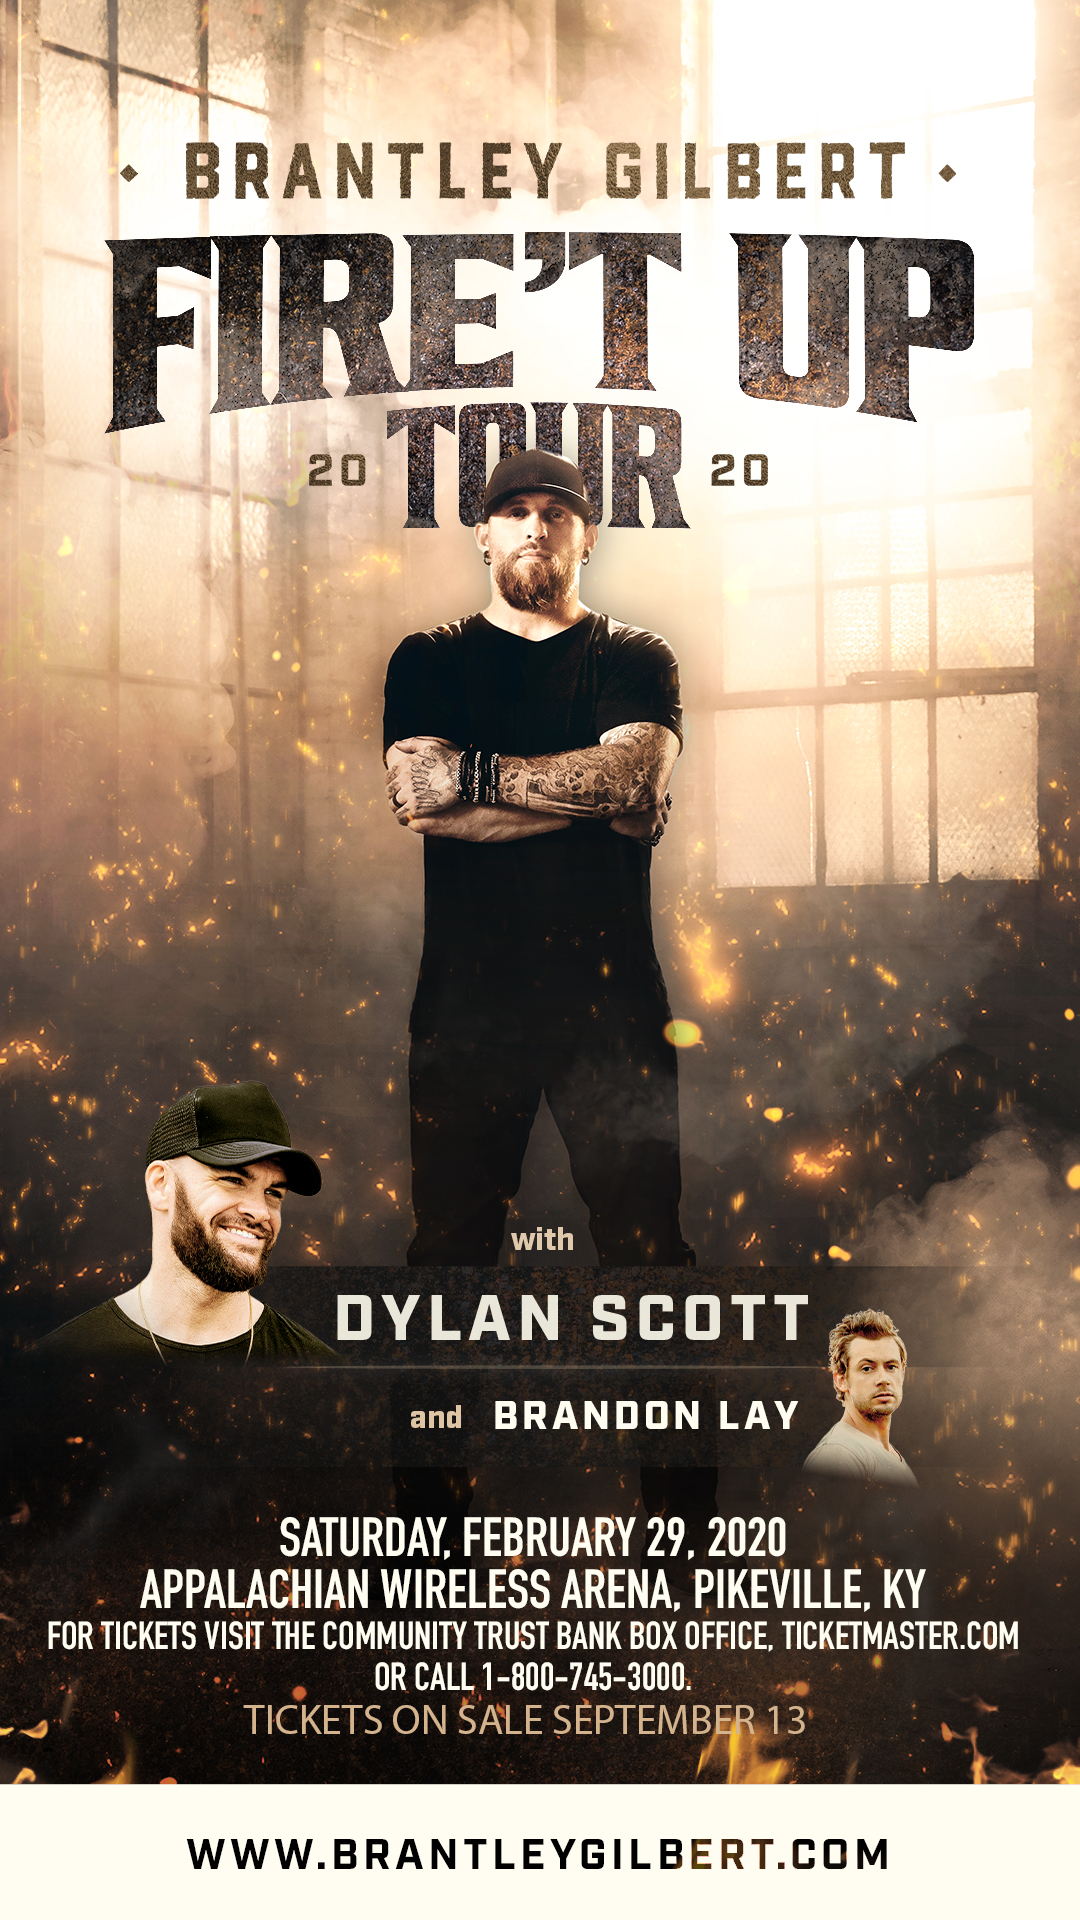 Brantley Gilbert Tour 2020.Brantley Gilbert Fire T Up Tour 2020